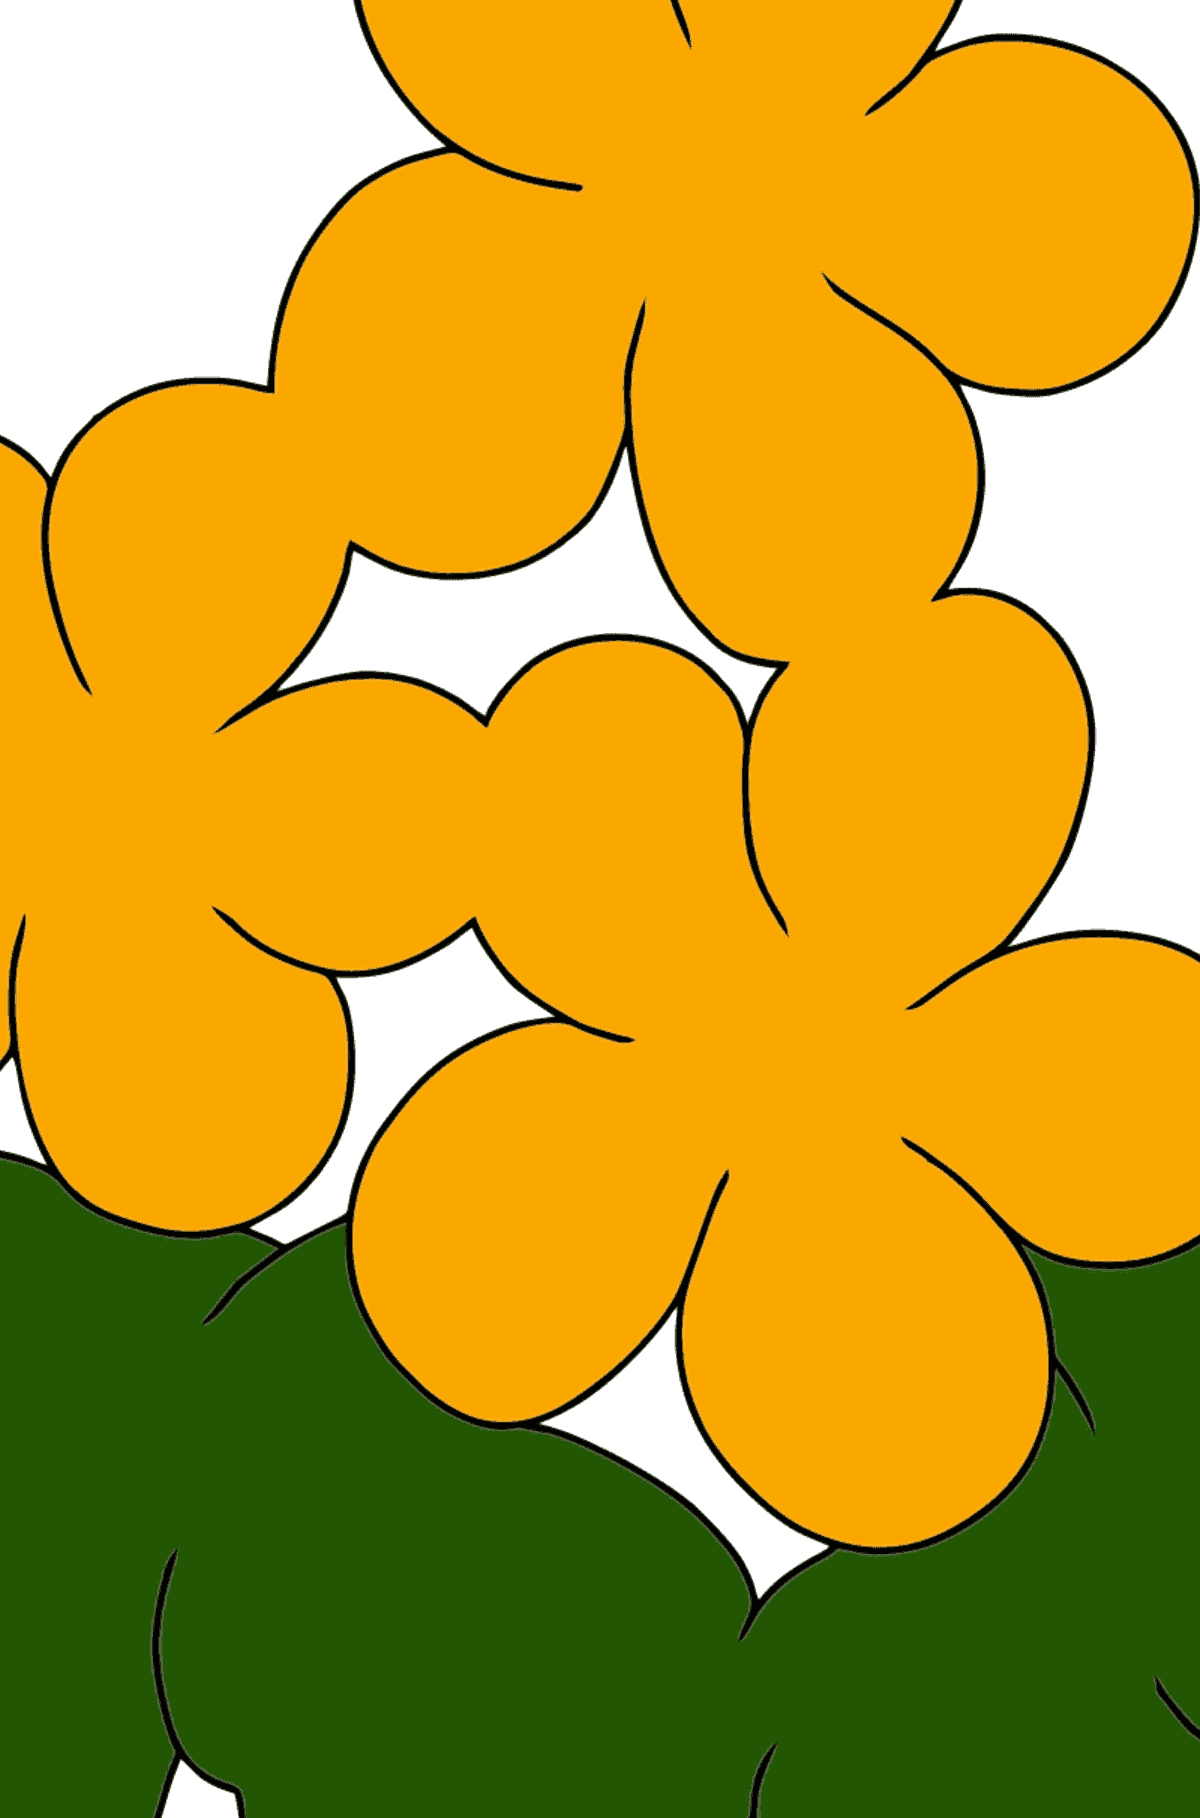 Coloring Page - Spring and First Flowers for Kids  - Color by Number